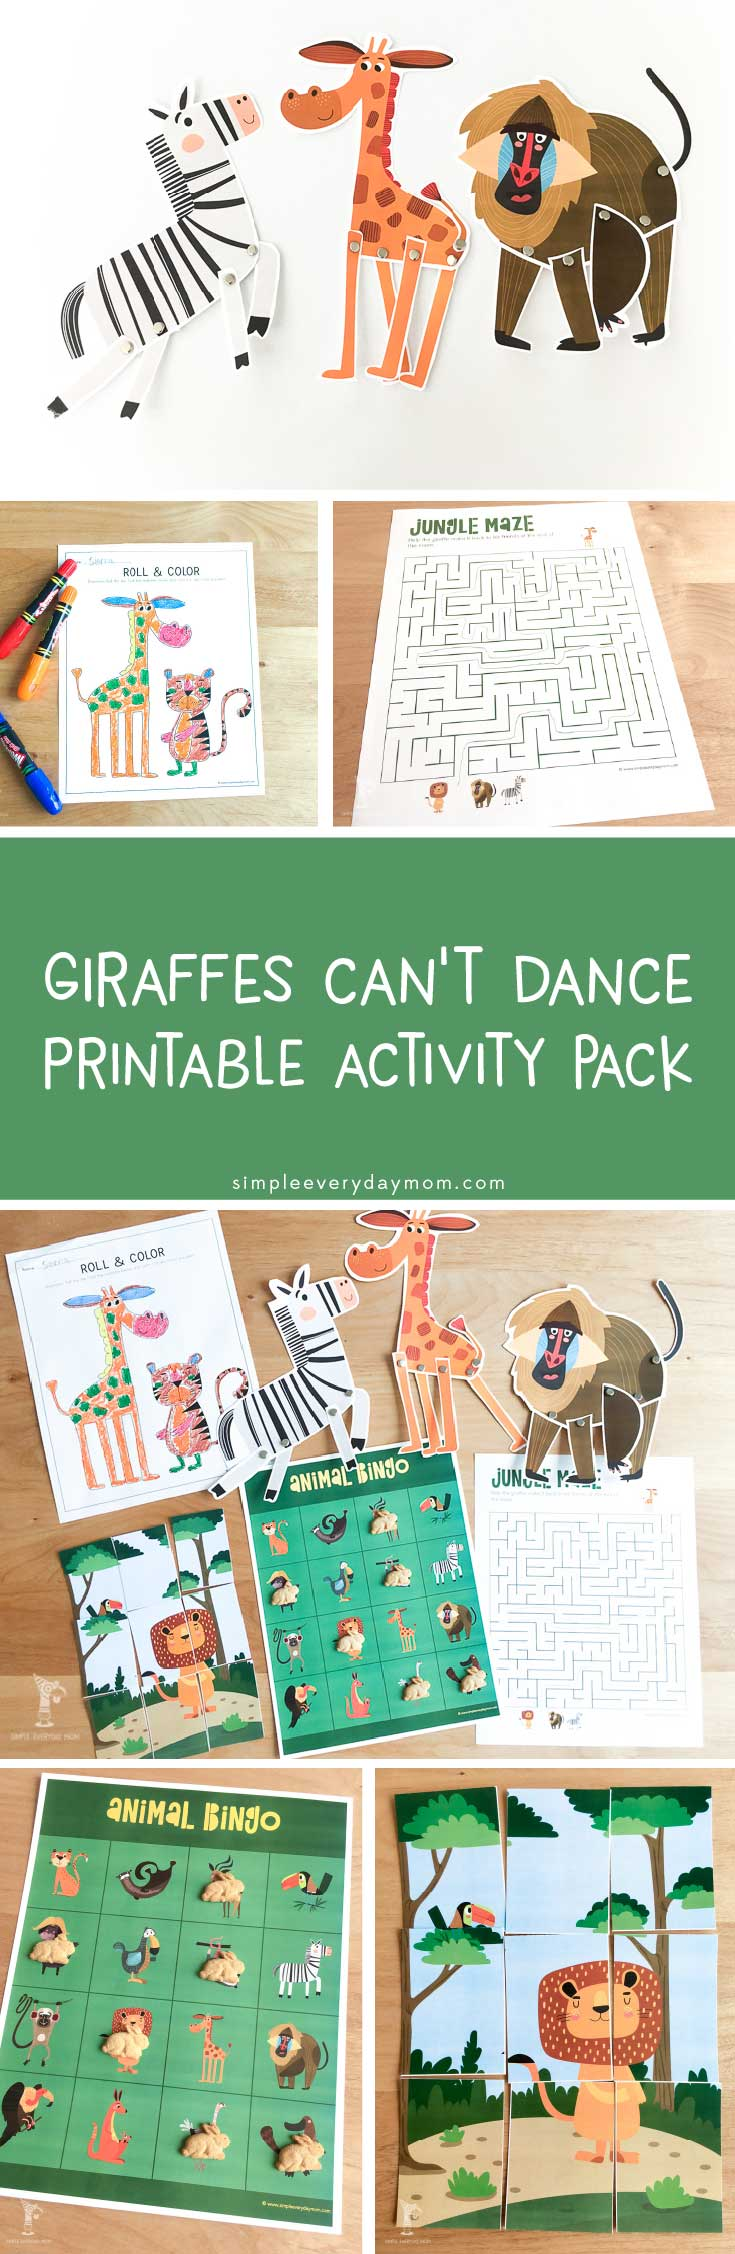 giraffes cant dance activities | Kids will love these book activities that encourage creativity and are so much fun to do.